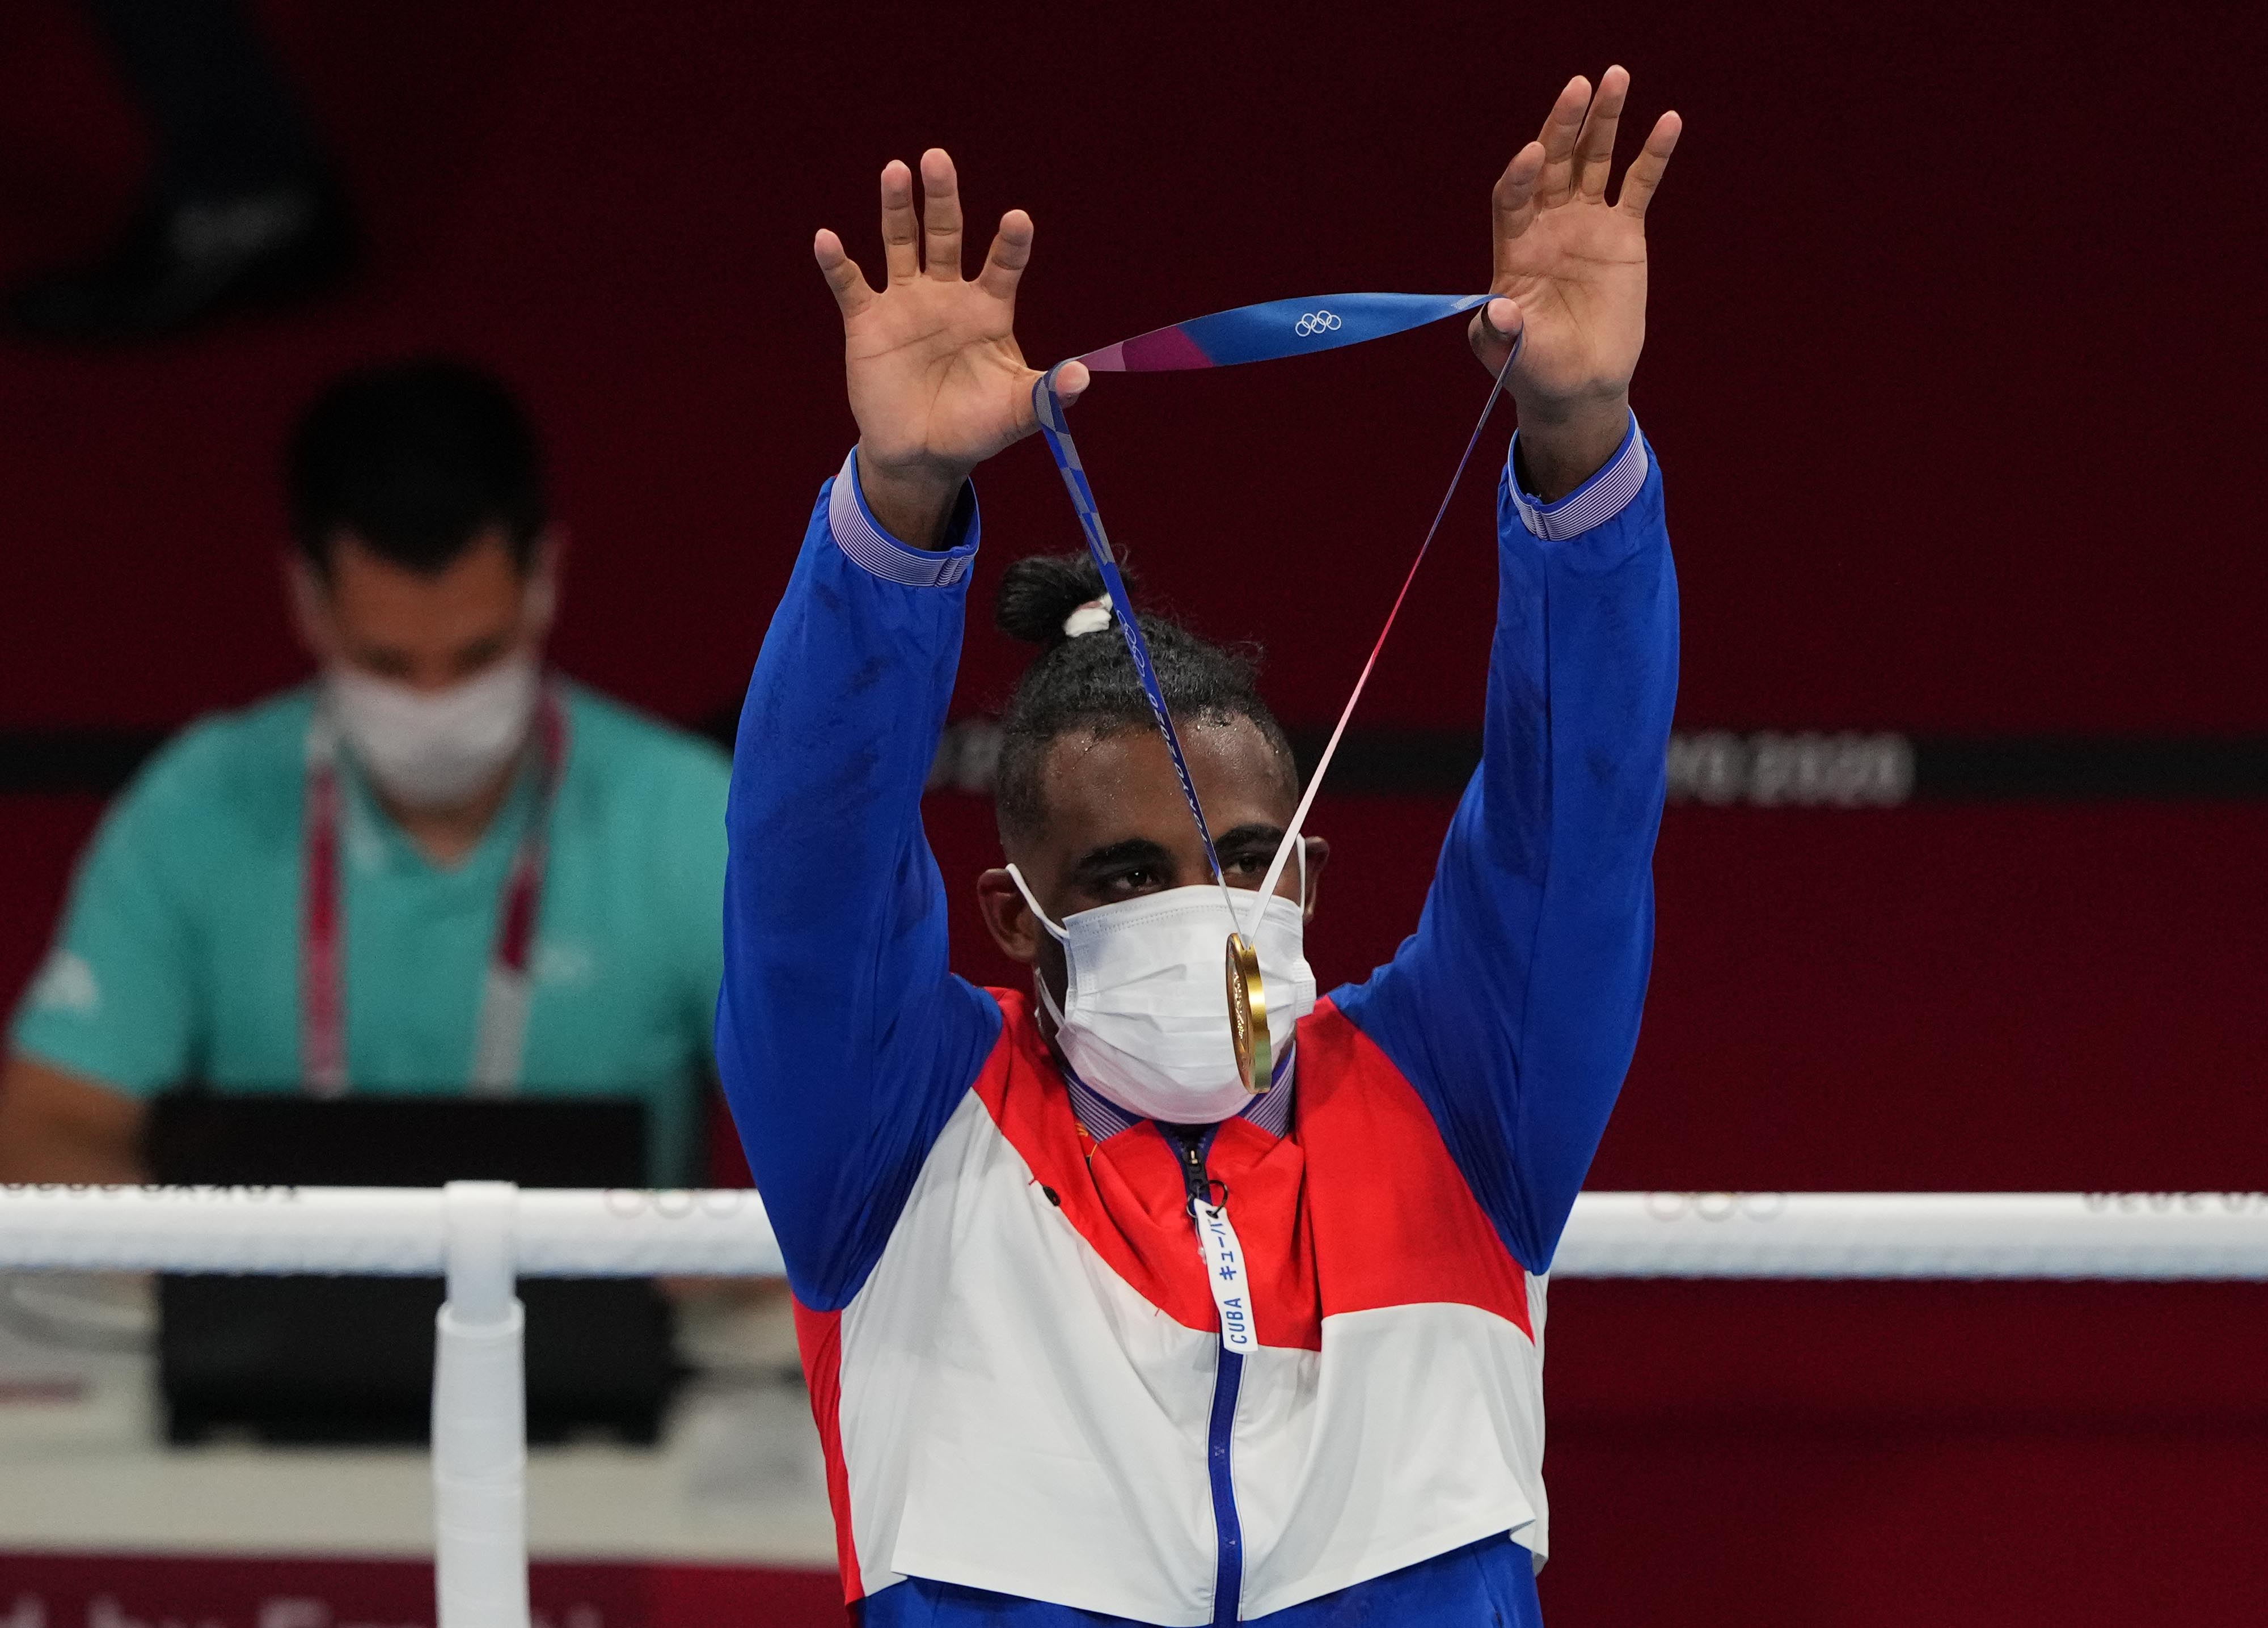 Cuba wins two Olympic gold medals in men's boxing